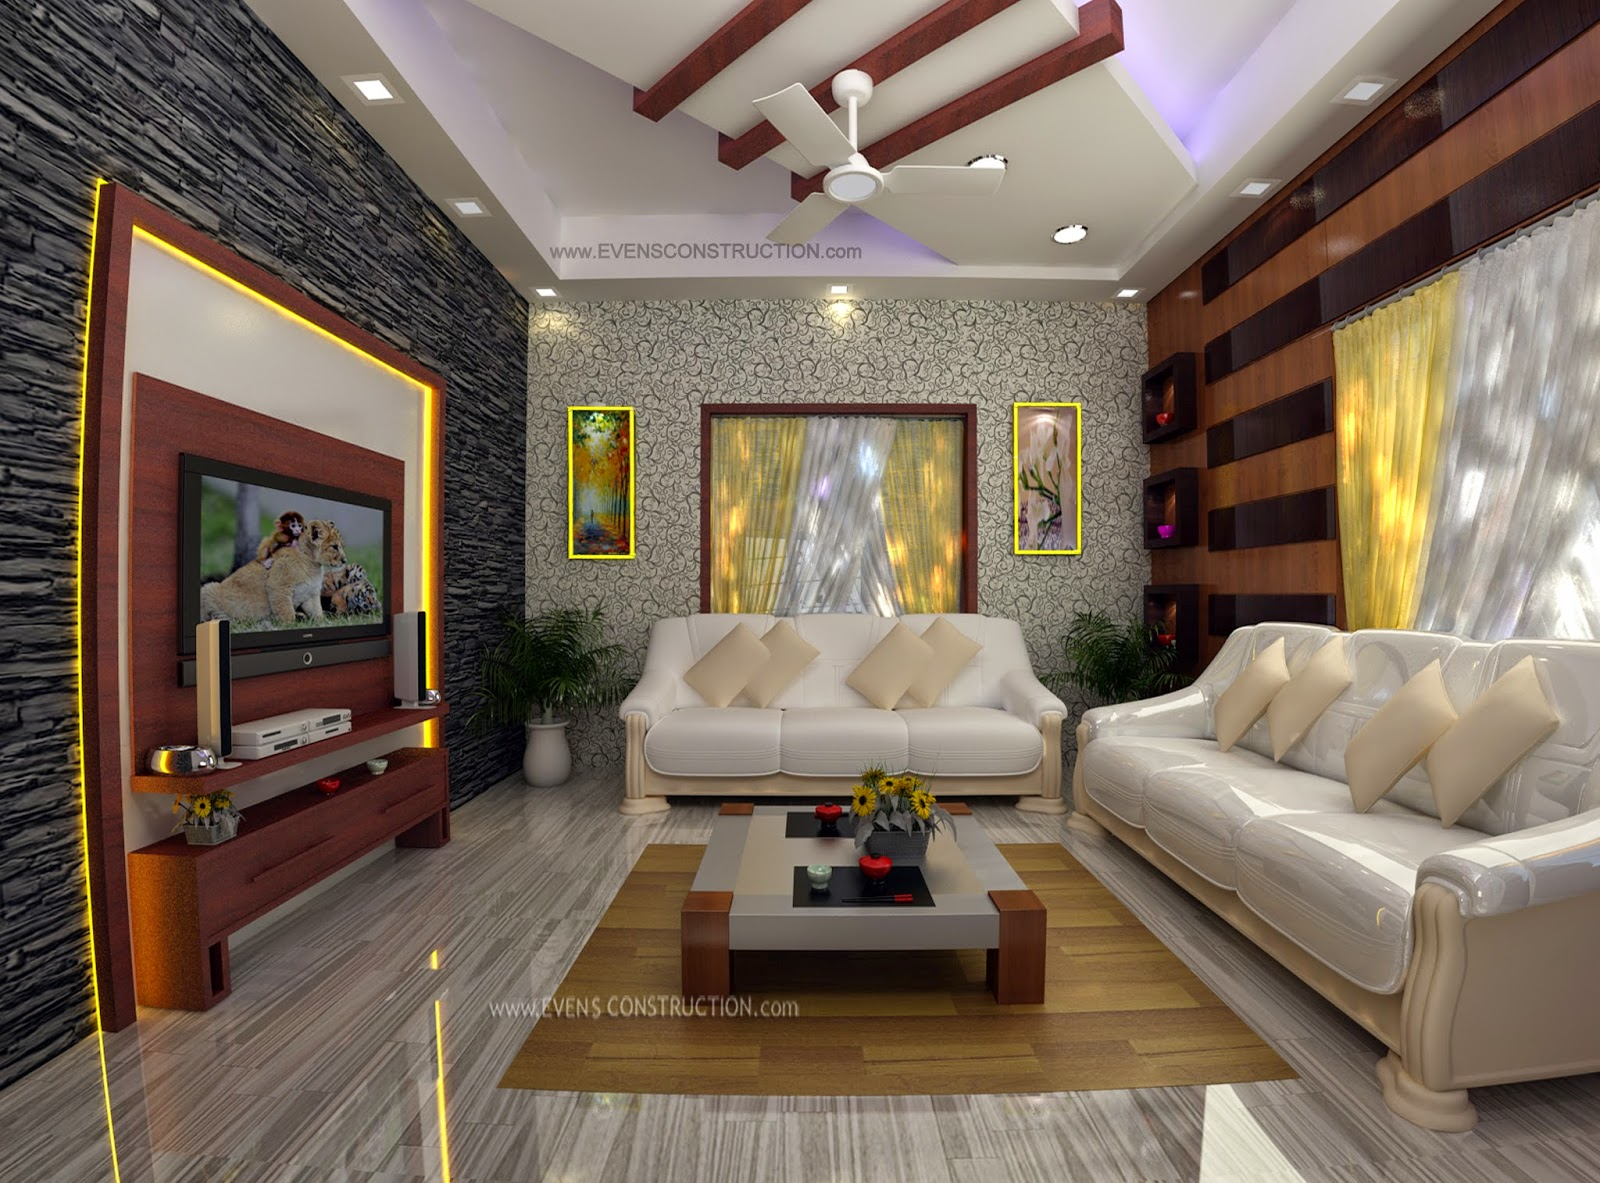 home temple design interior home and landscaping design pics for gt home temple interior design